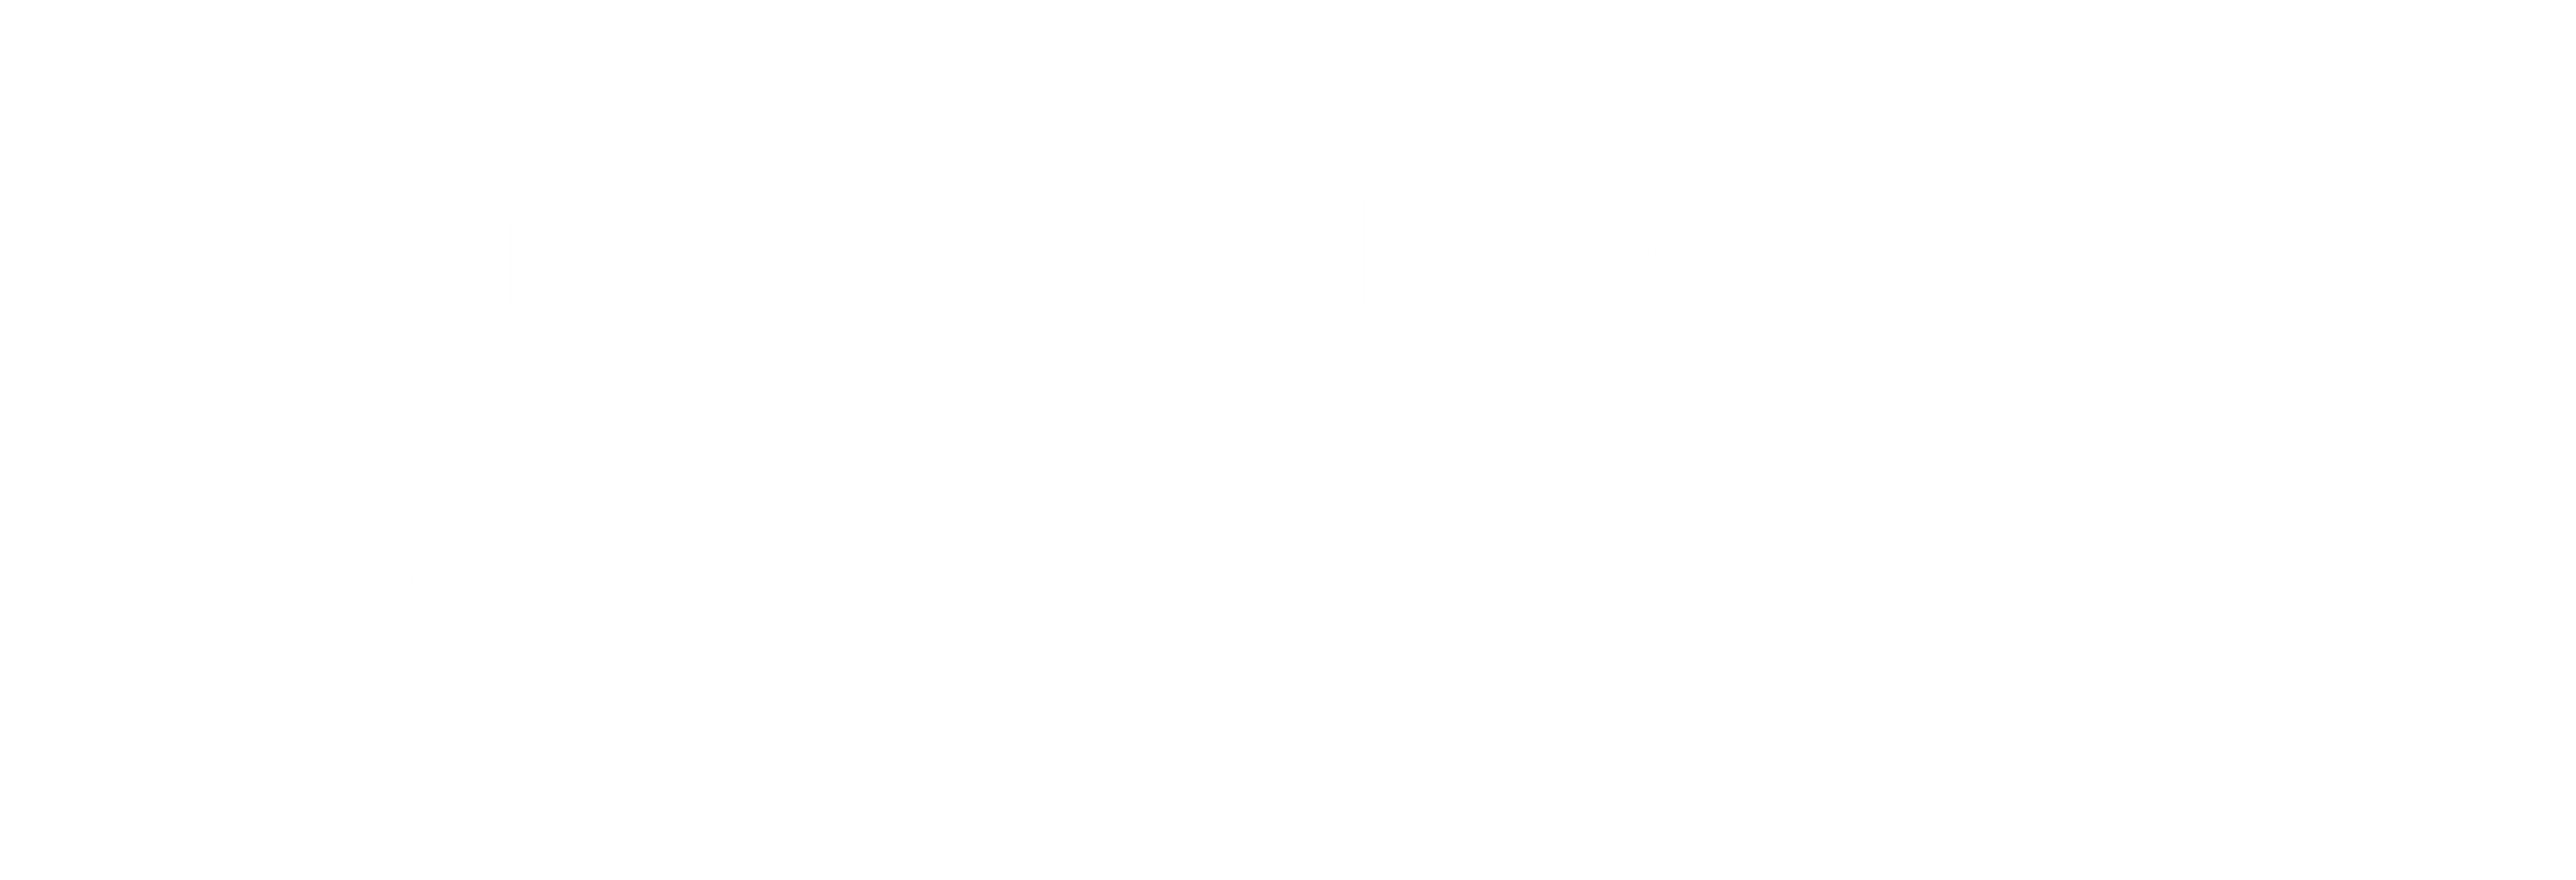 Tickets for Museum of Ice Cream Private Events in San Francisco from ShowClix